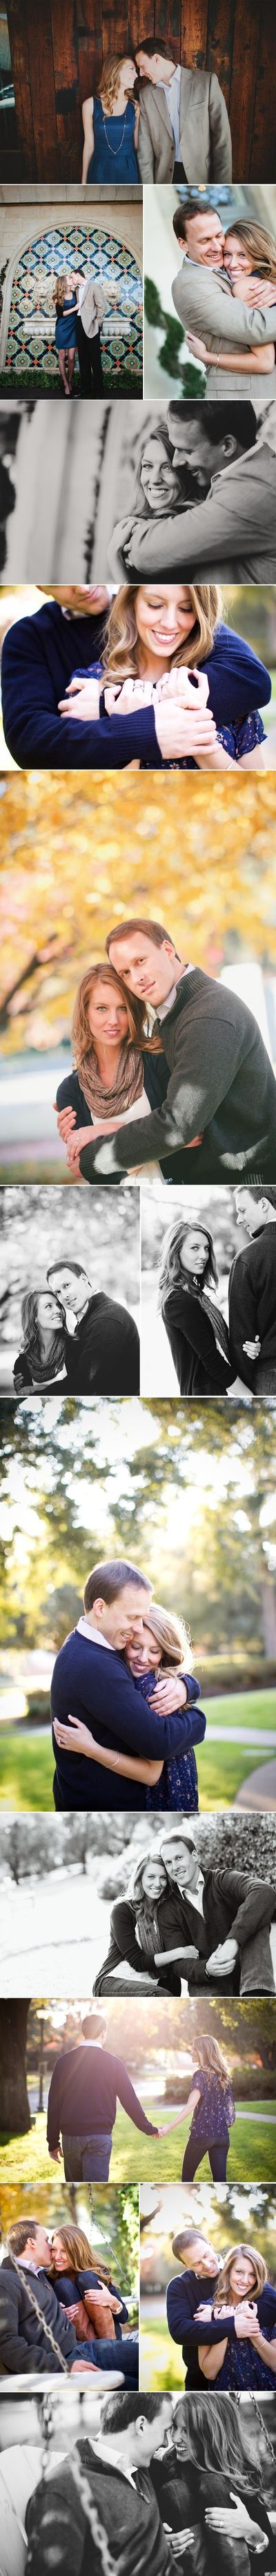 Some of the prettiest engagements I've seen